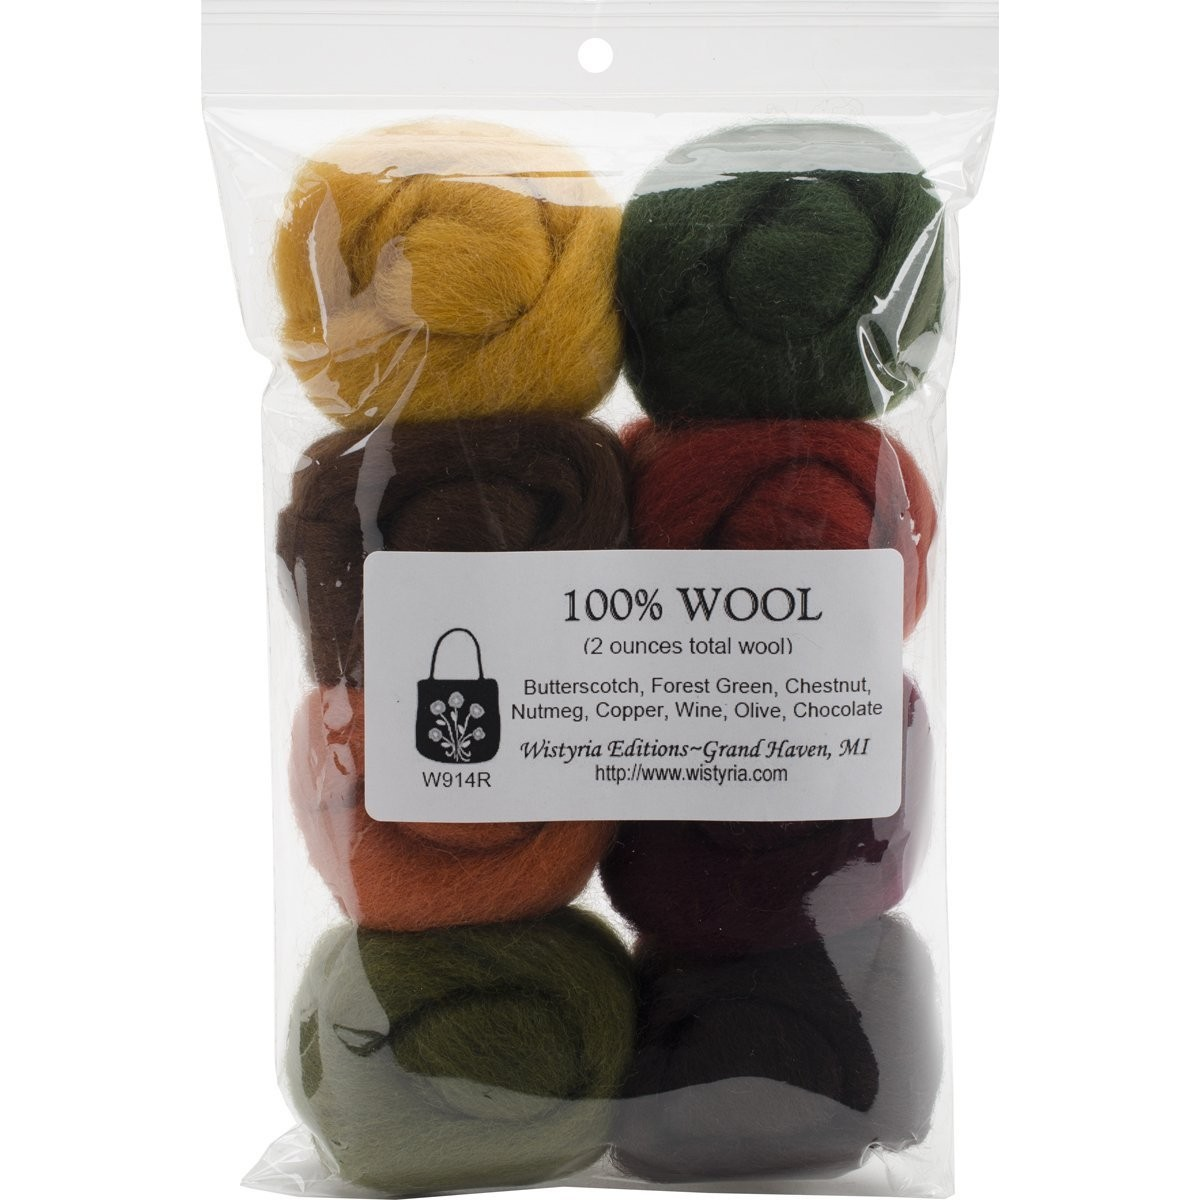 100% Wool - Timberland Colors